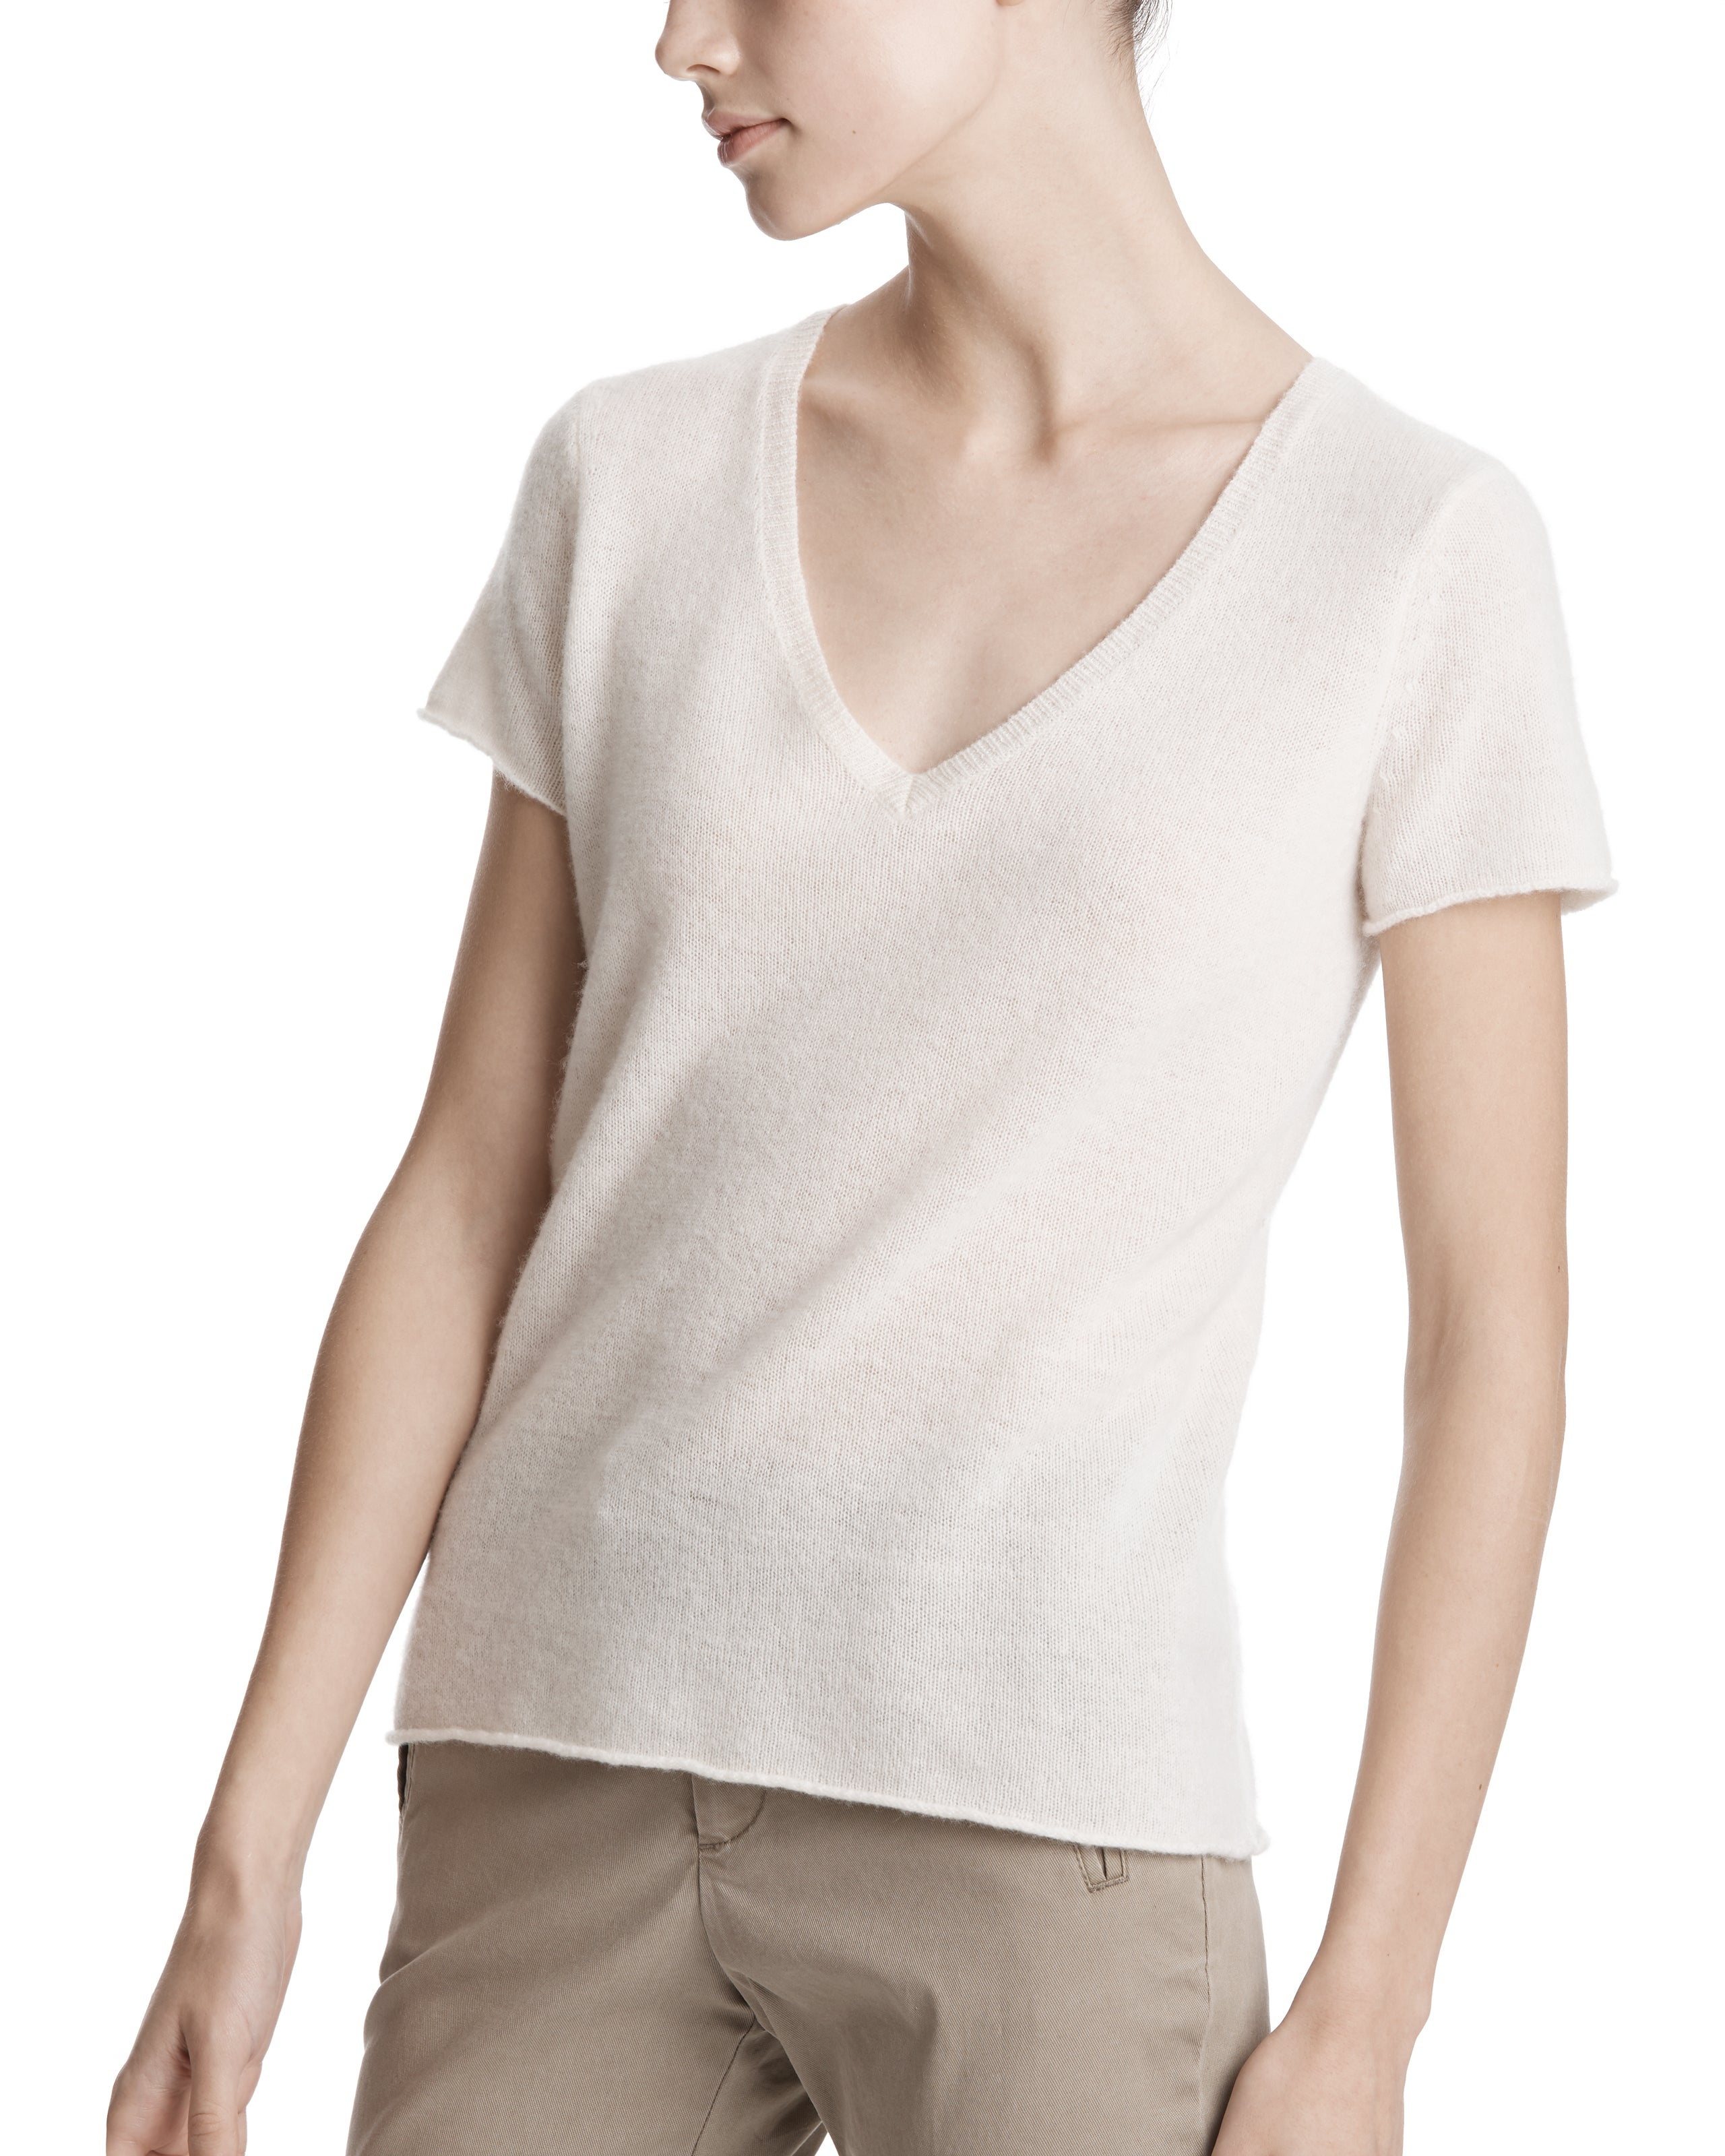 ATM Cashmere Short Sleeve V-Neck Sweater